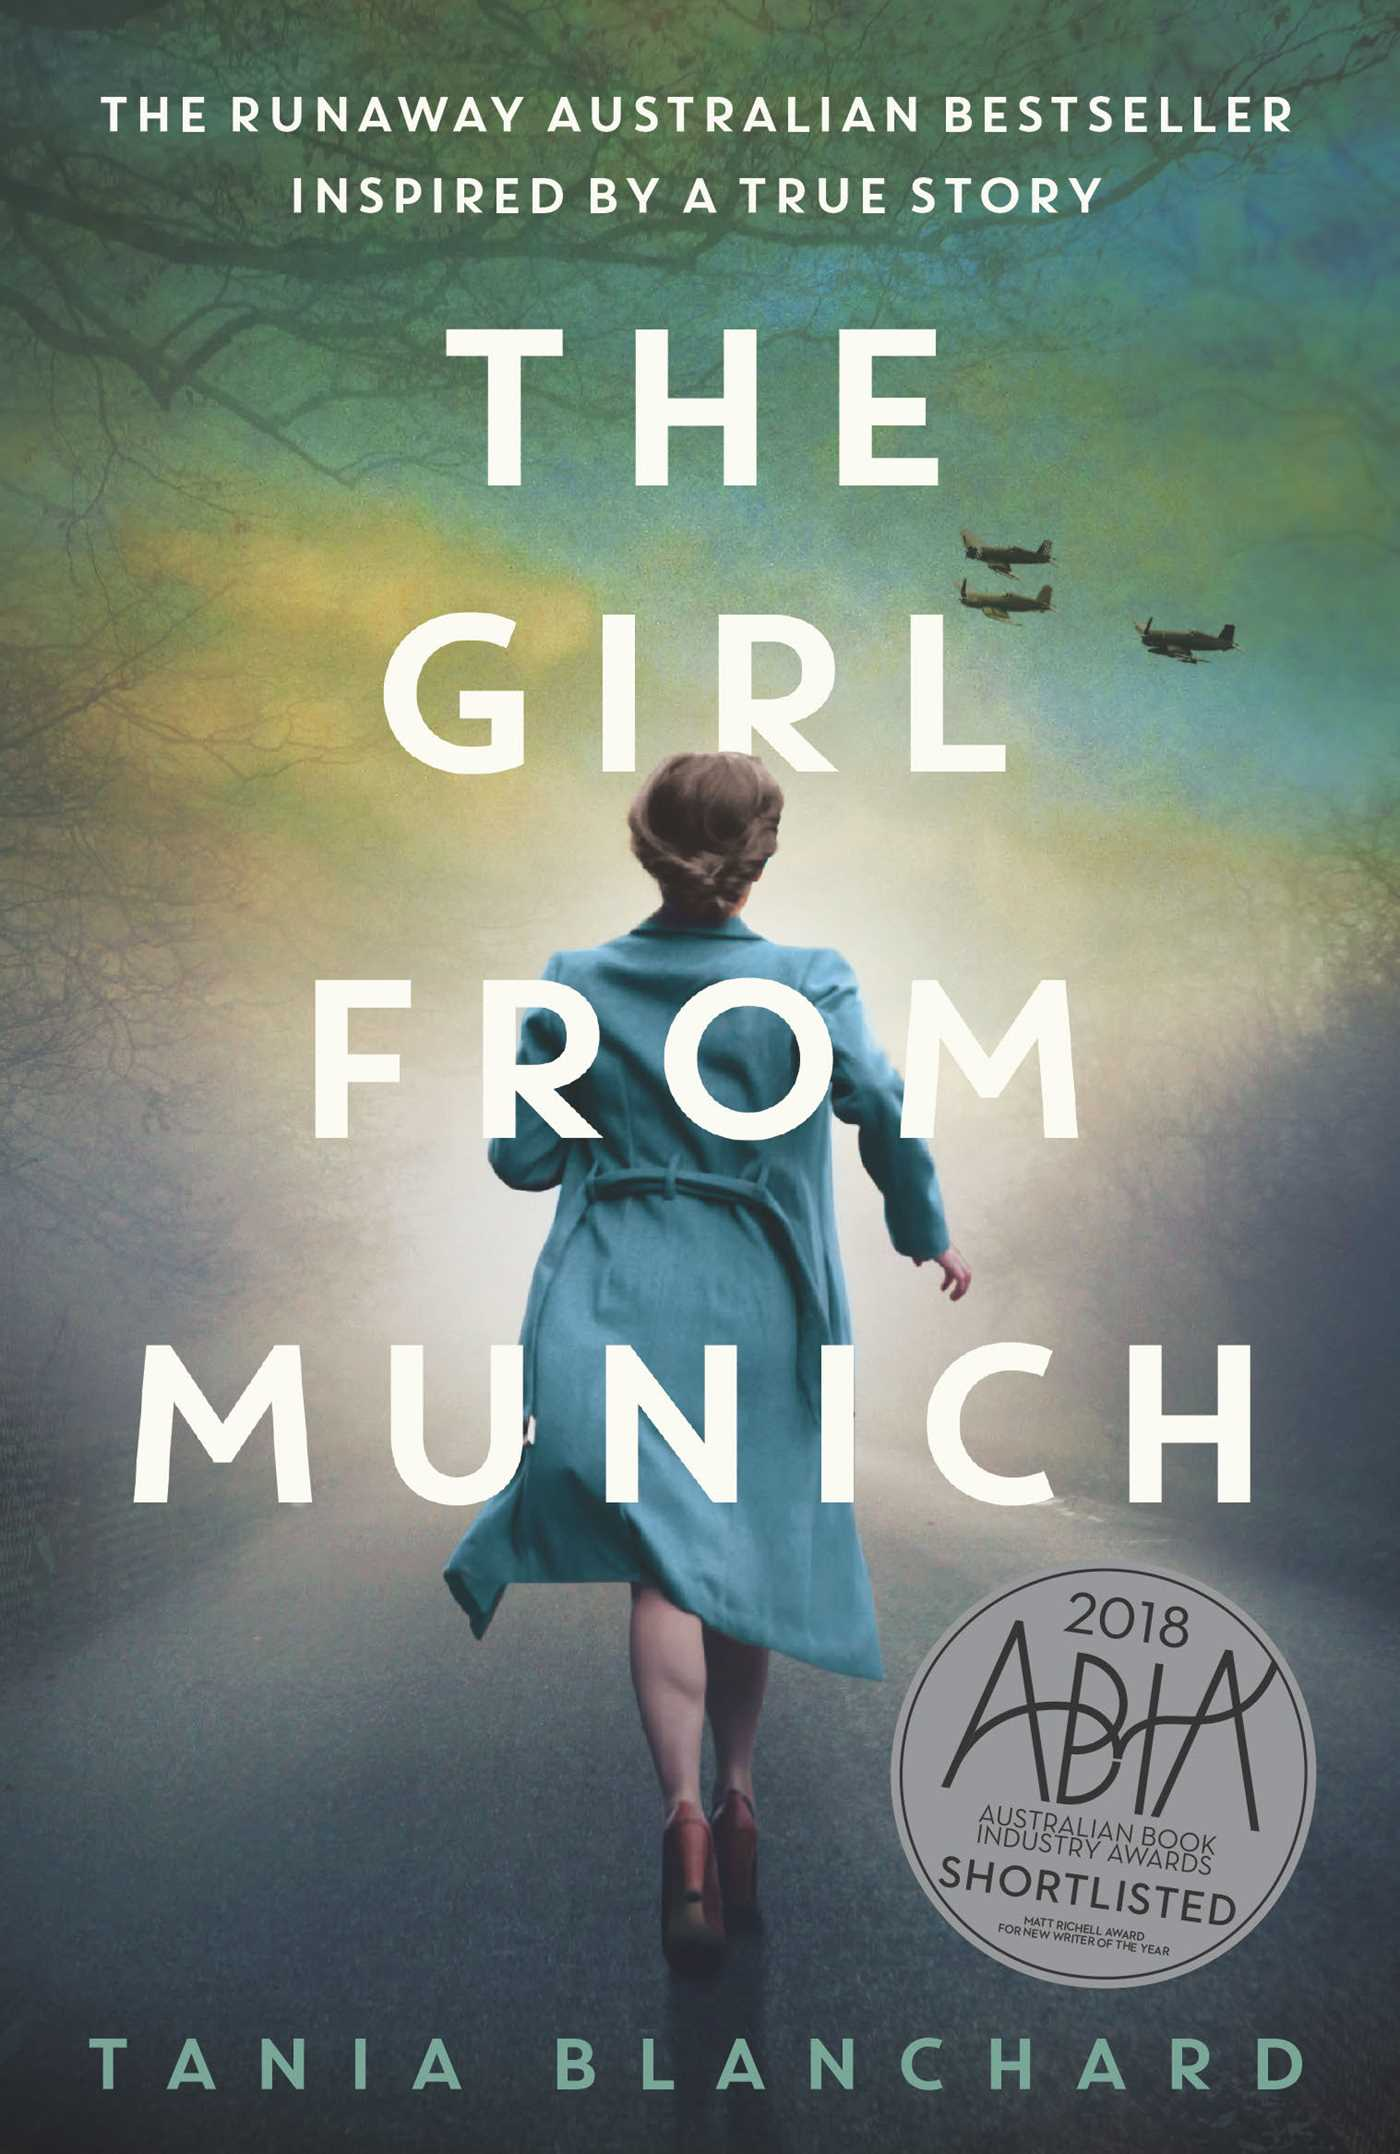 Source: https://www.simonandschuster.com.au/books/The-Girl-from-Munich/Tania-Blanchard/9781925791204